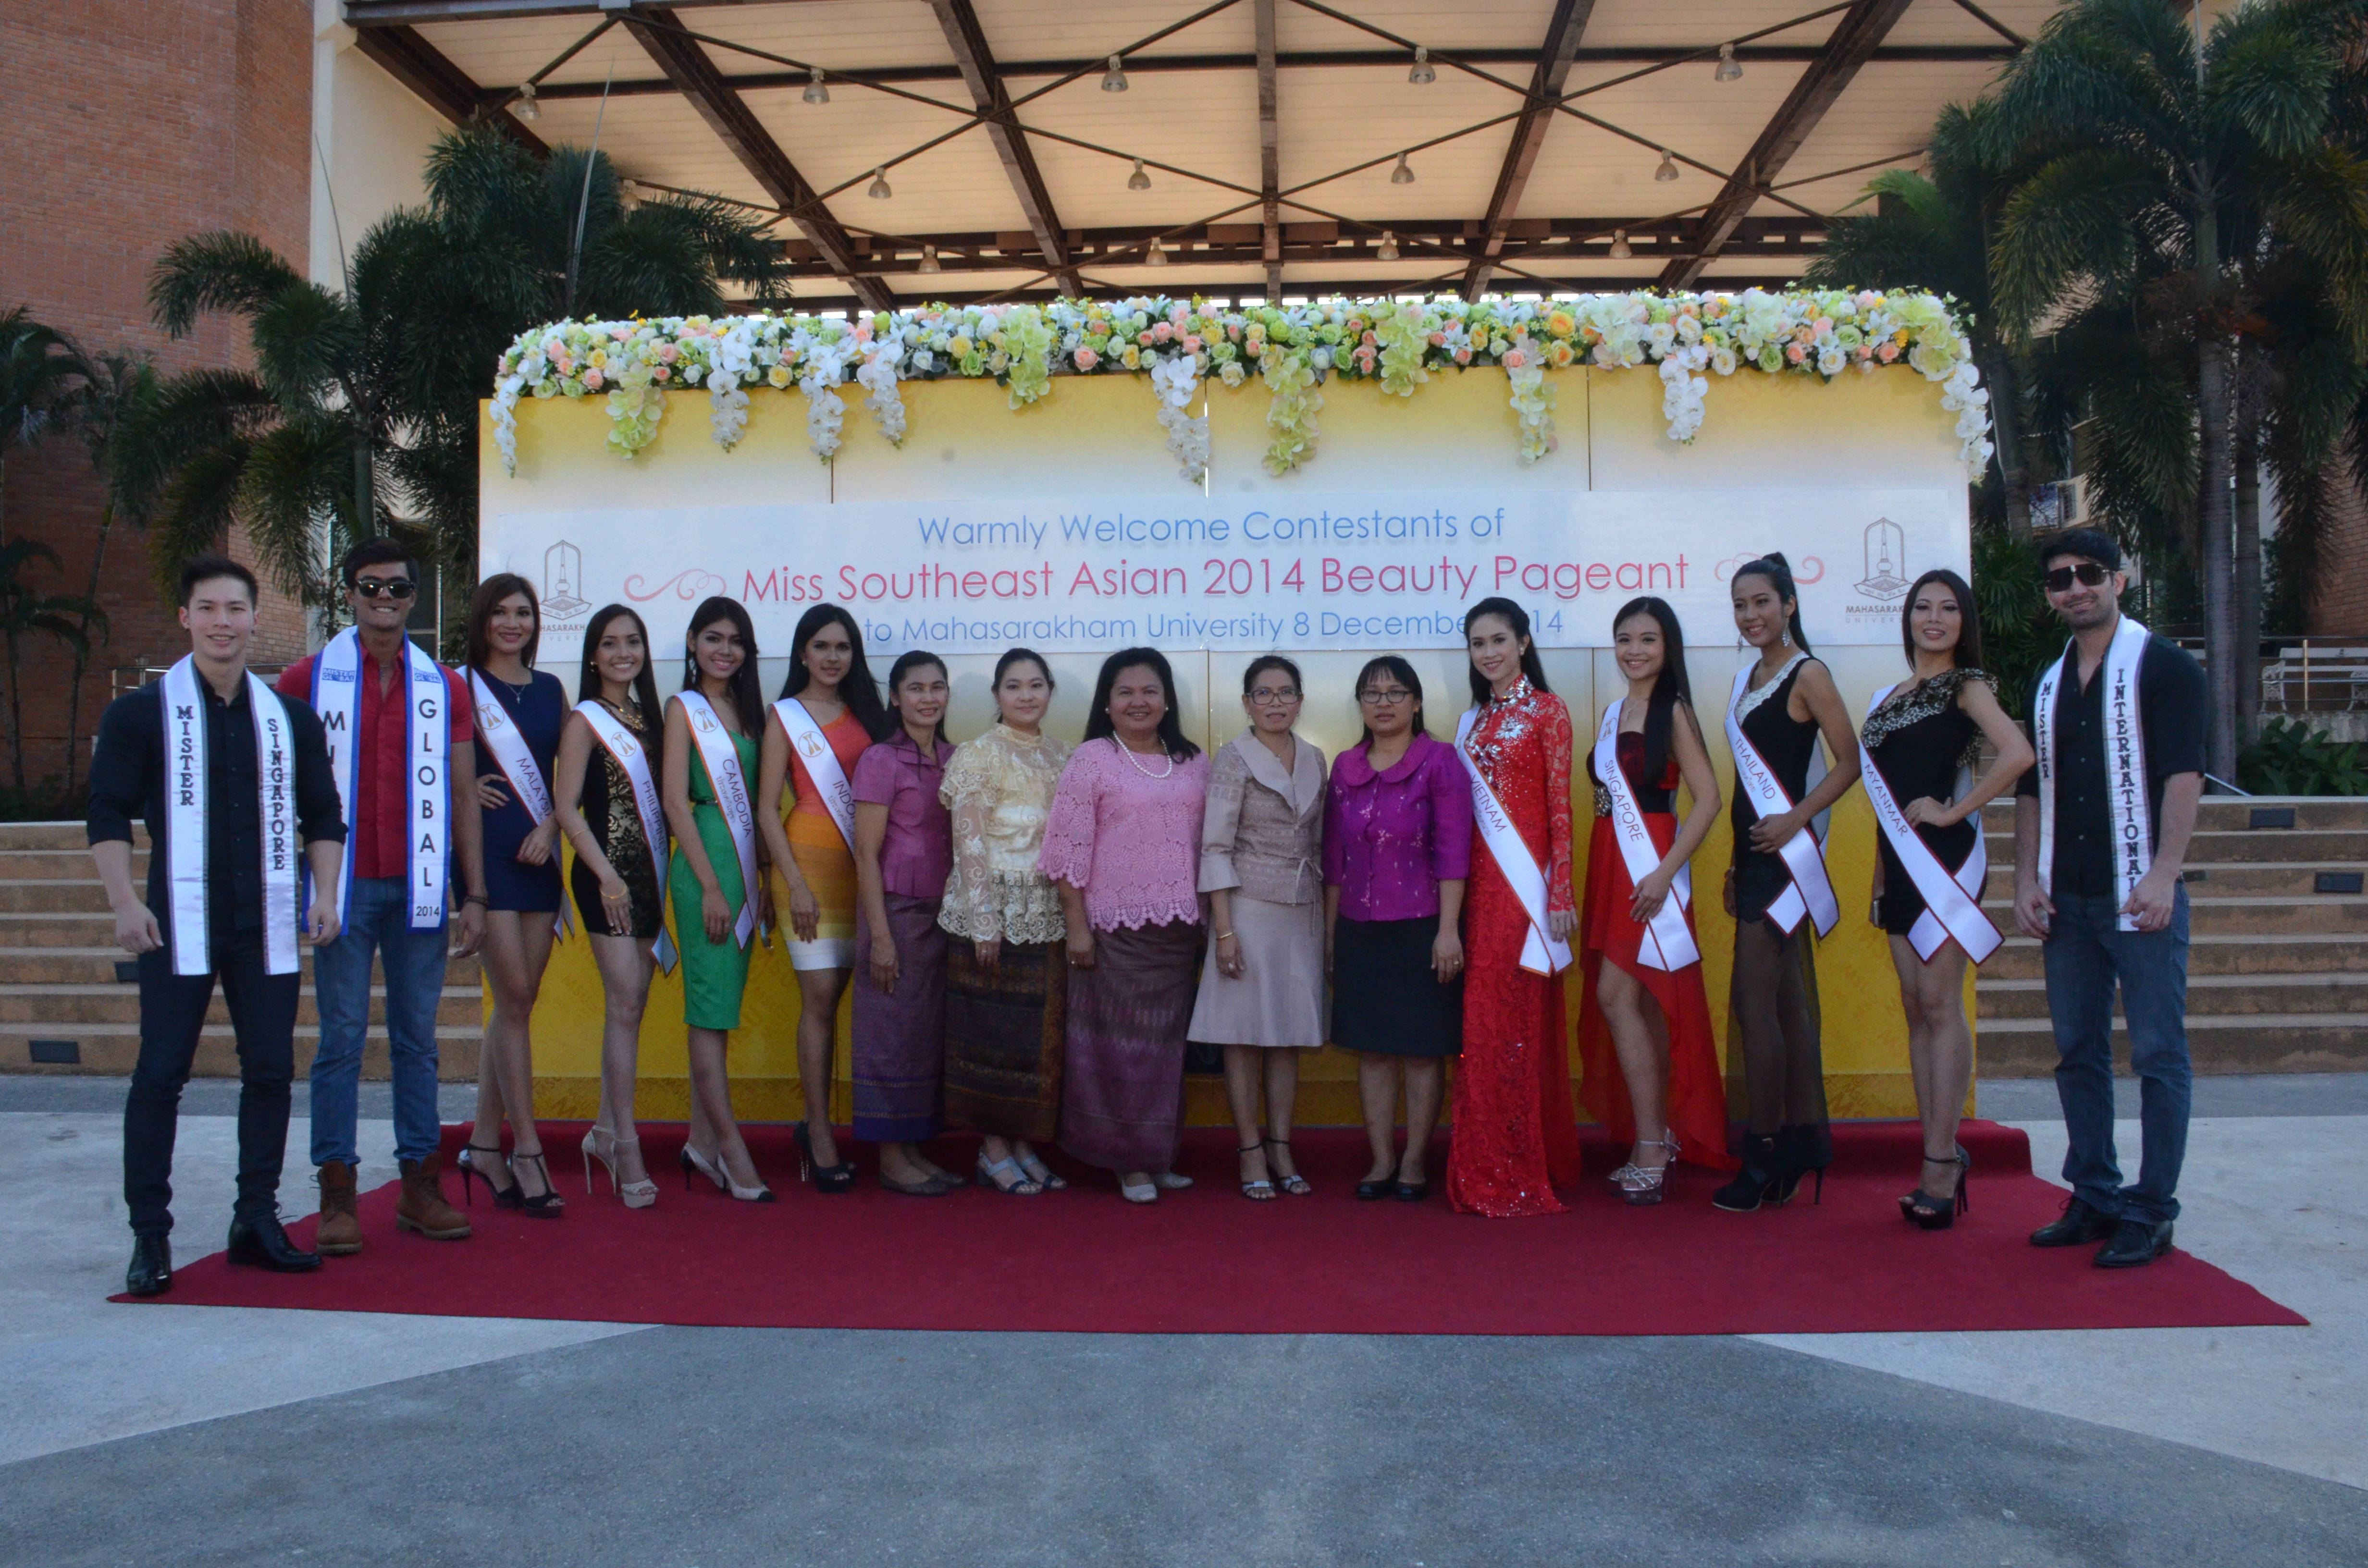 Miss Southeast Asian 2014 Beauty Pageant Contestants at MSU